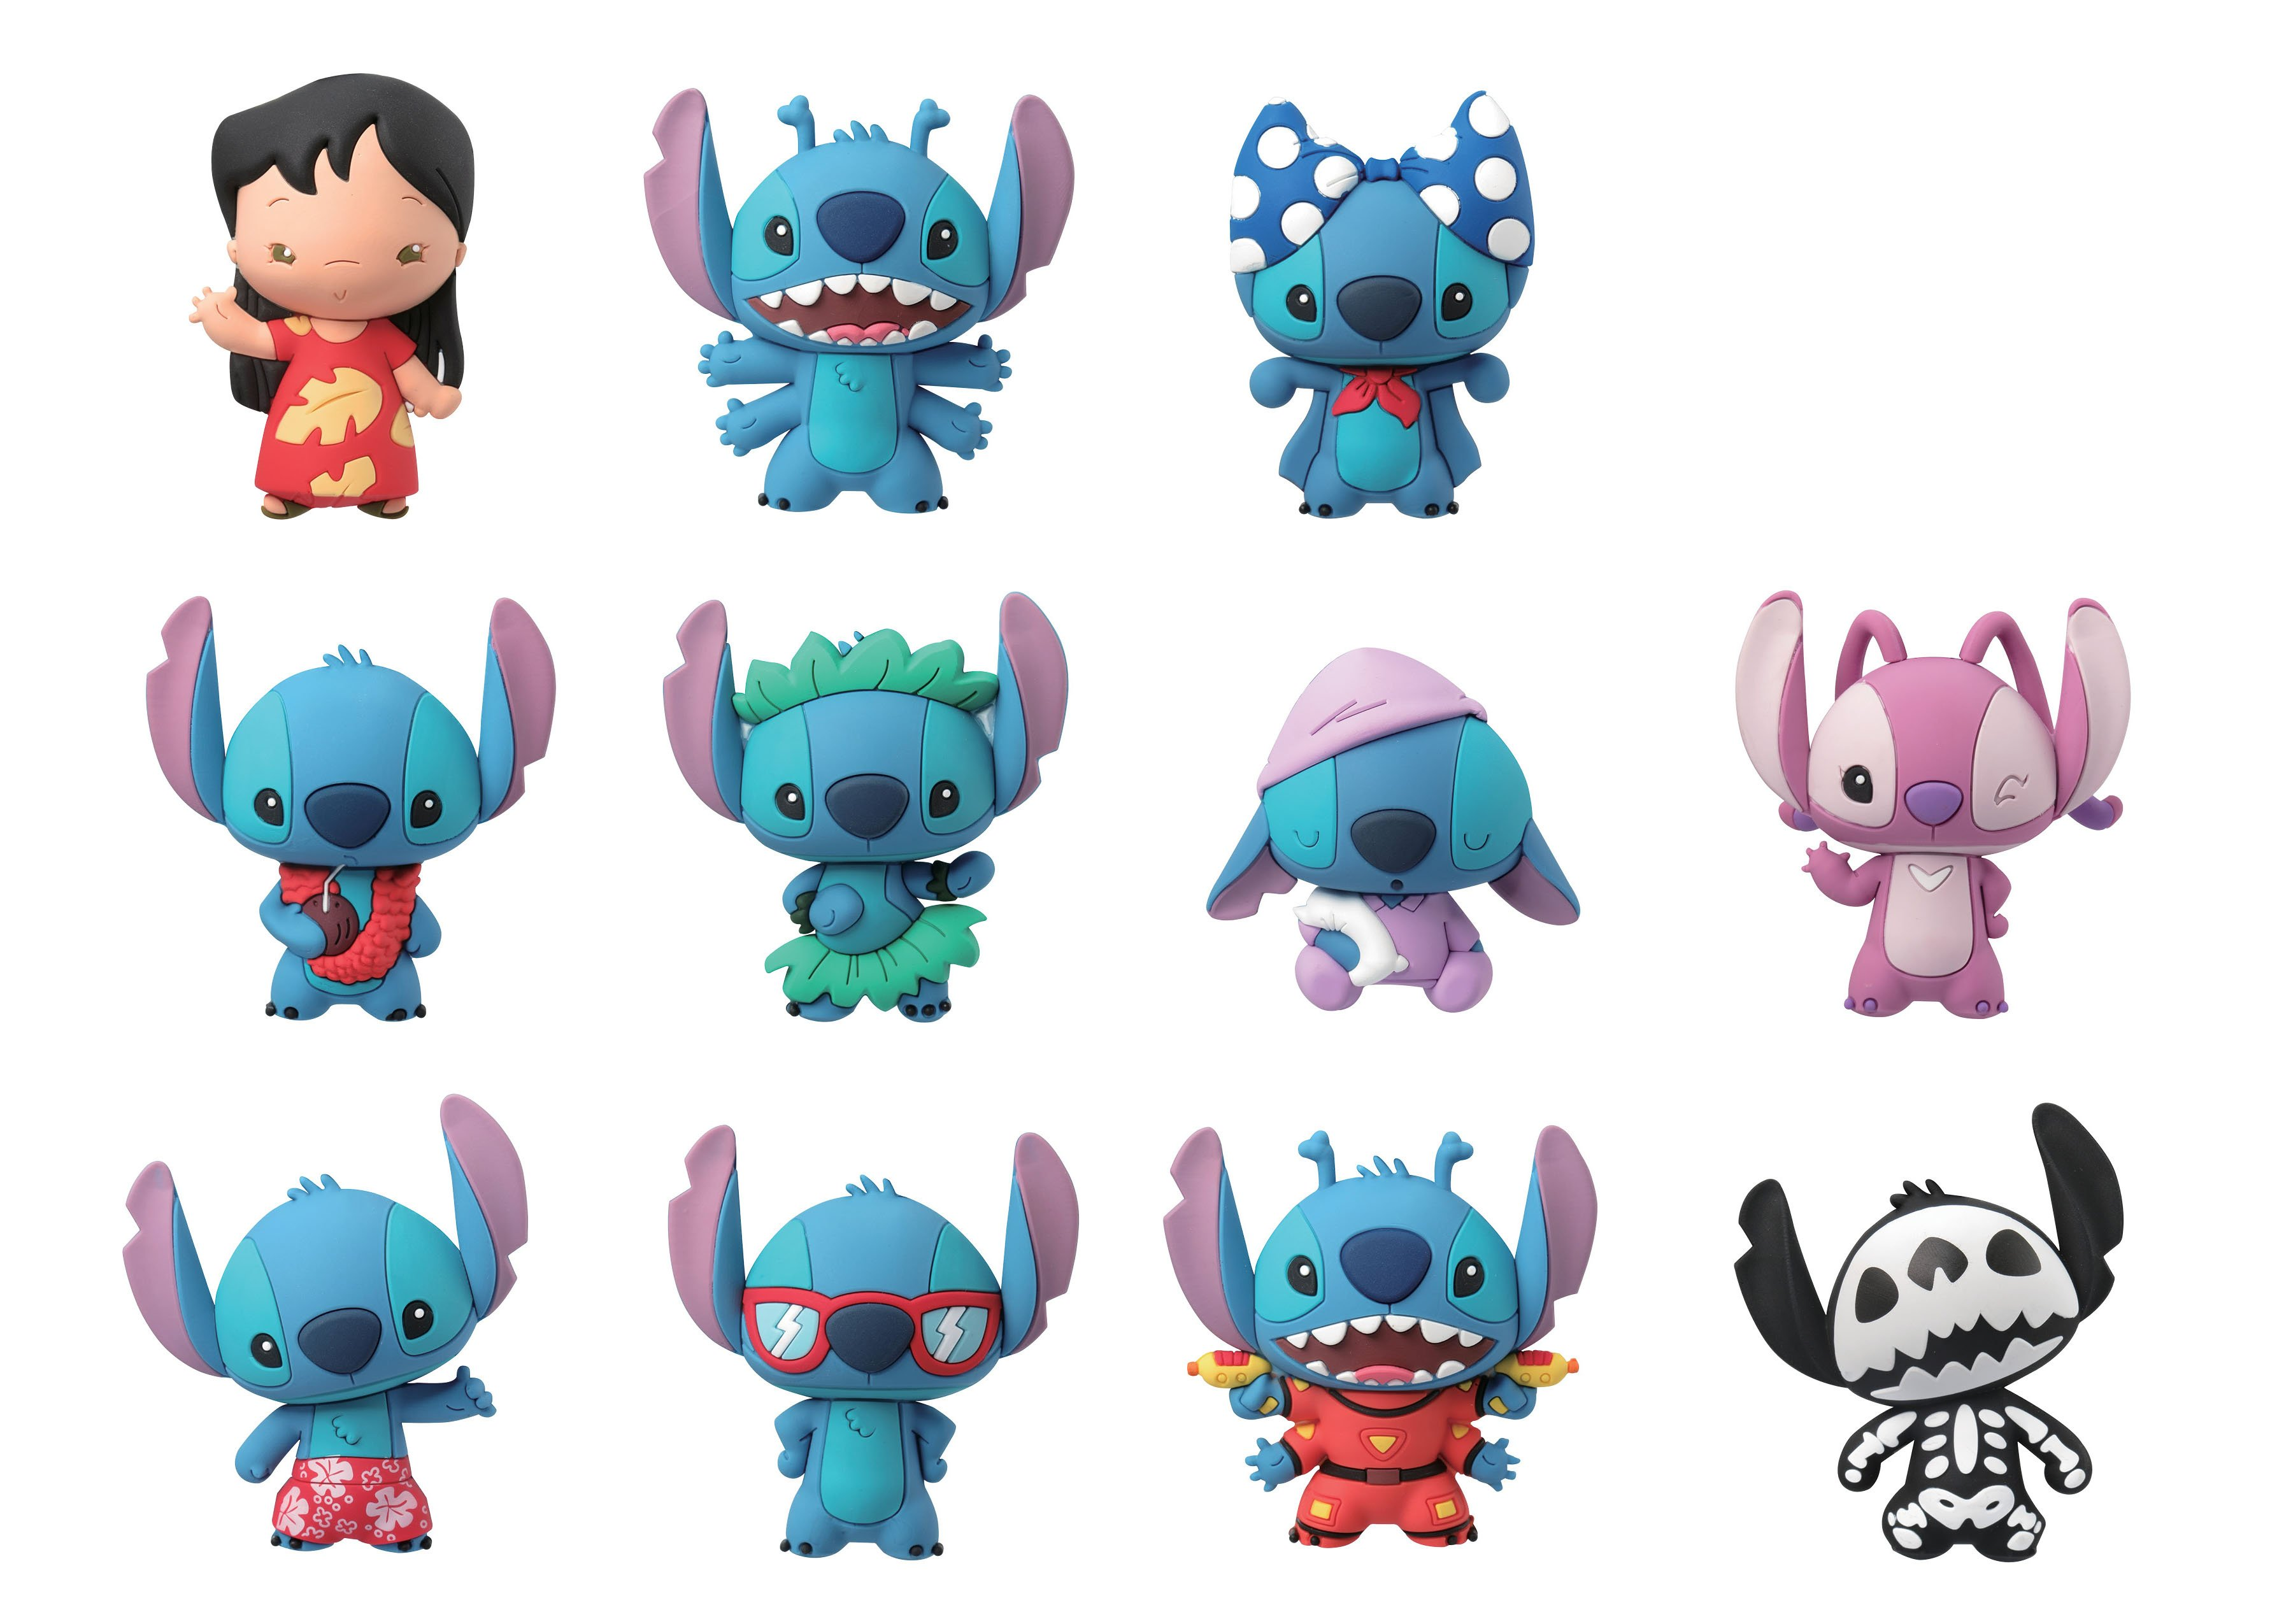 Monogram Lilo & Stitch 3D Foam Blind Bag Collection ...